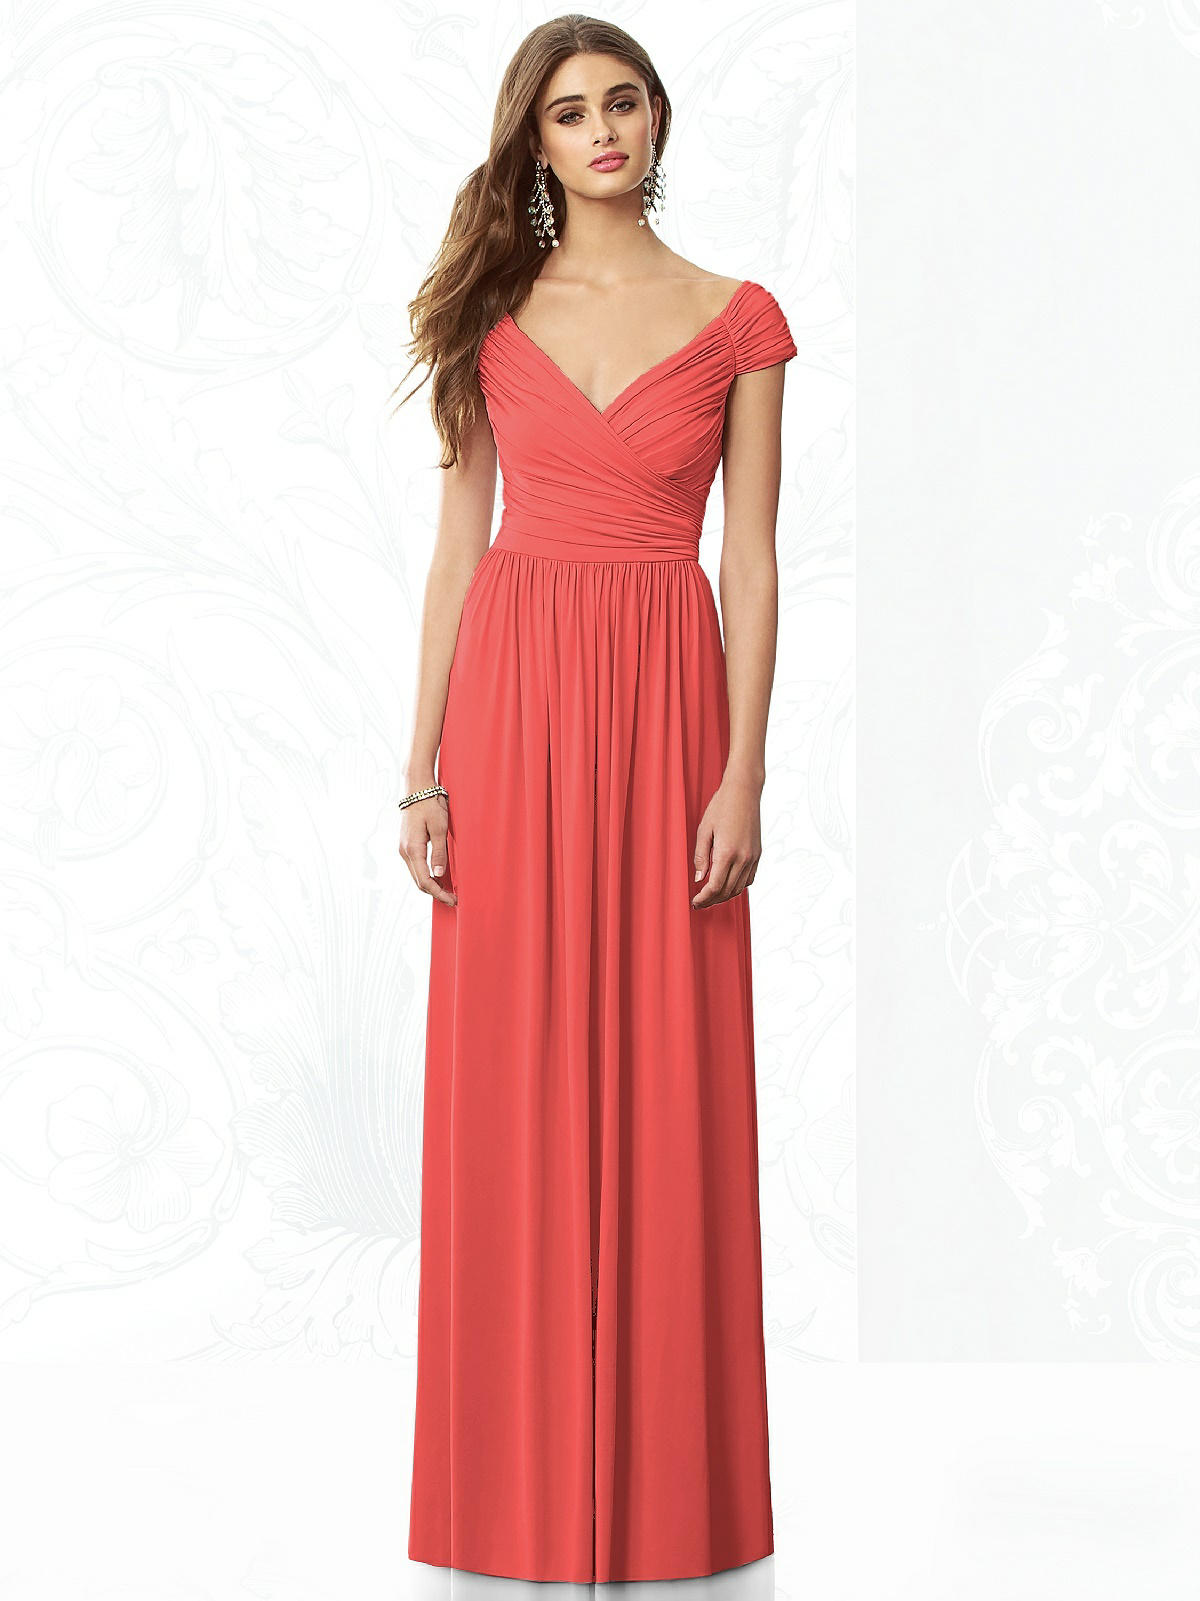 red sweetheart neckline bridesmaid dress